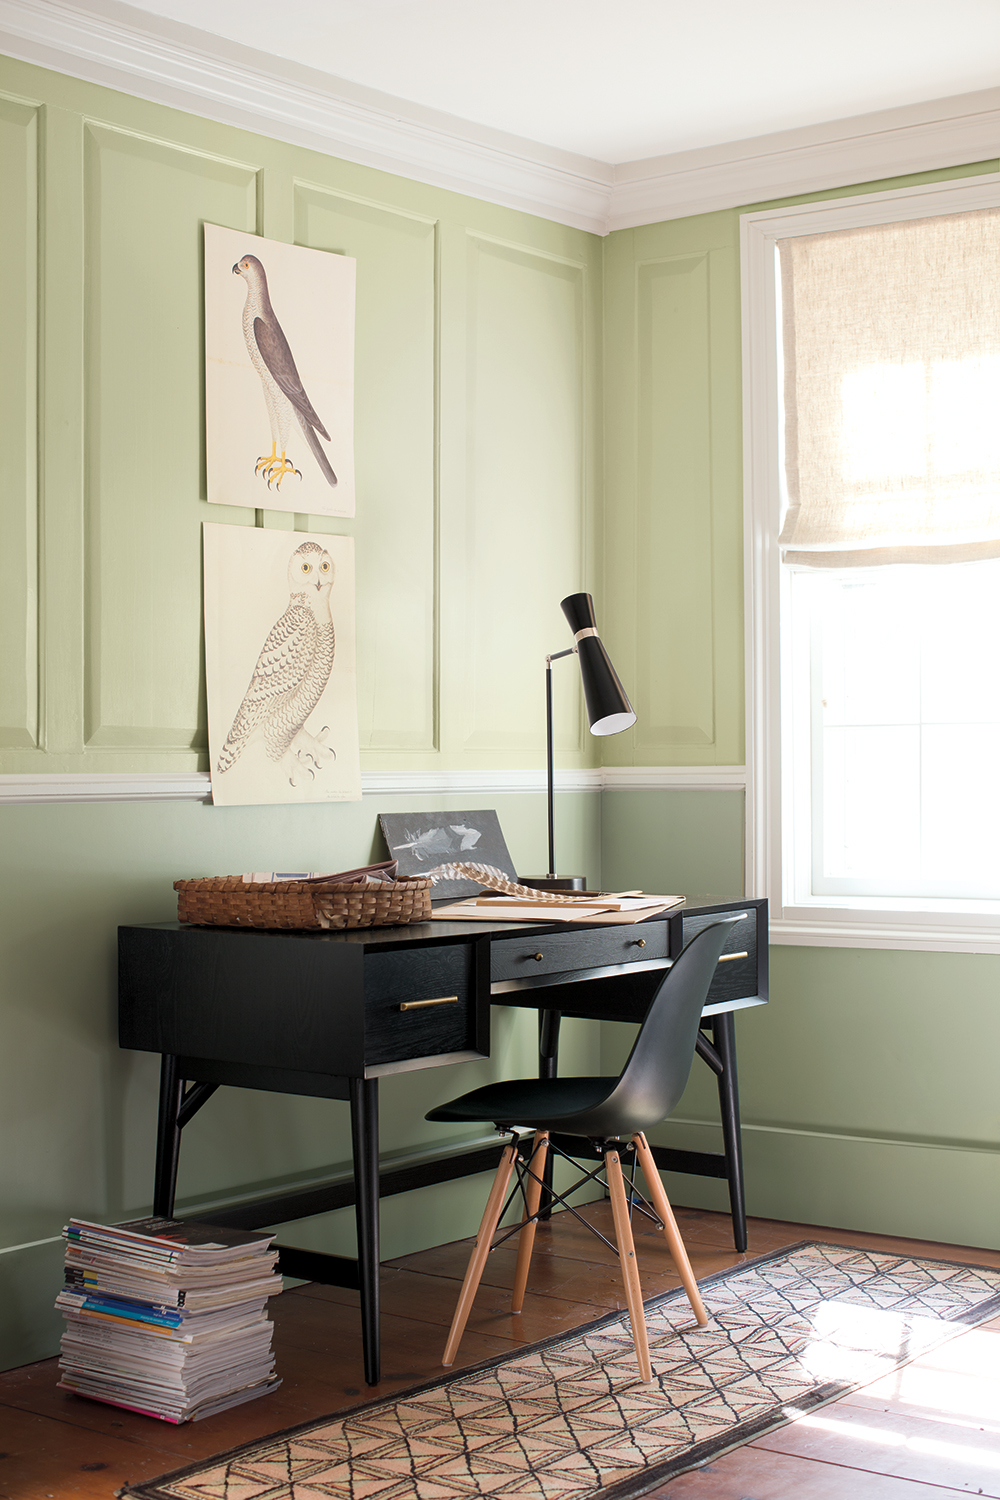 12 stylish ideas for your home office liv for interiors rh livforinteriors co uk